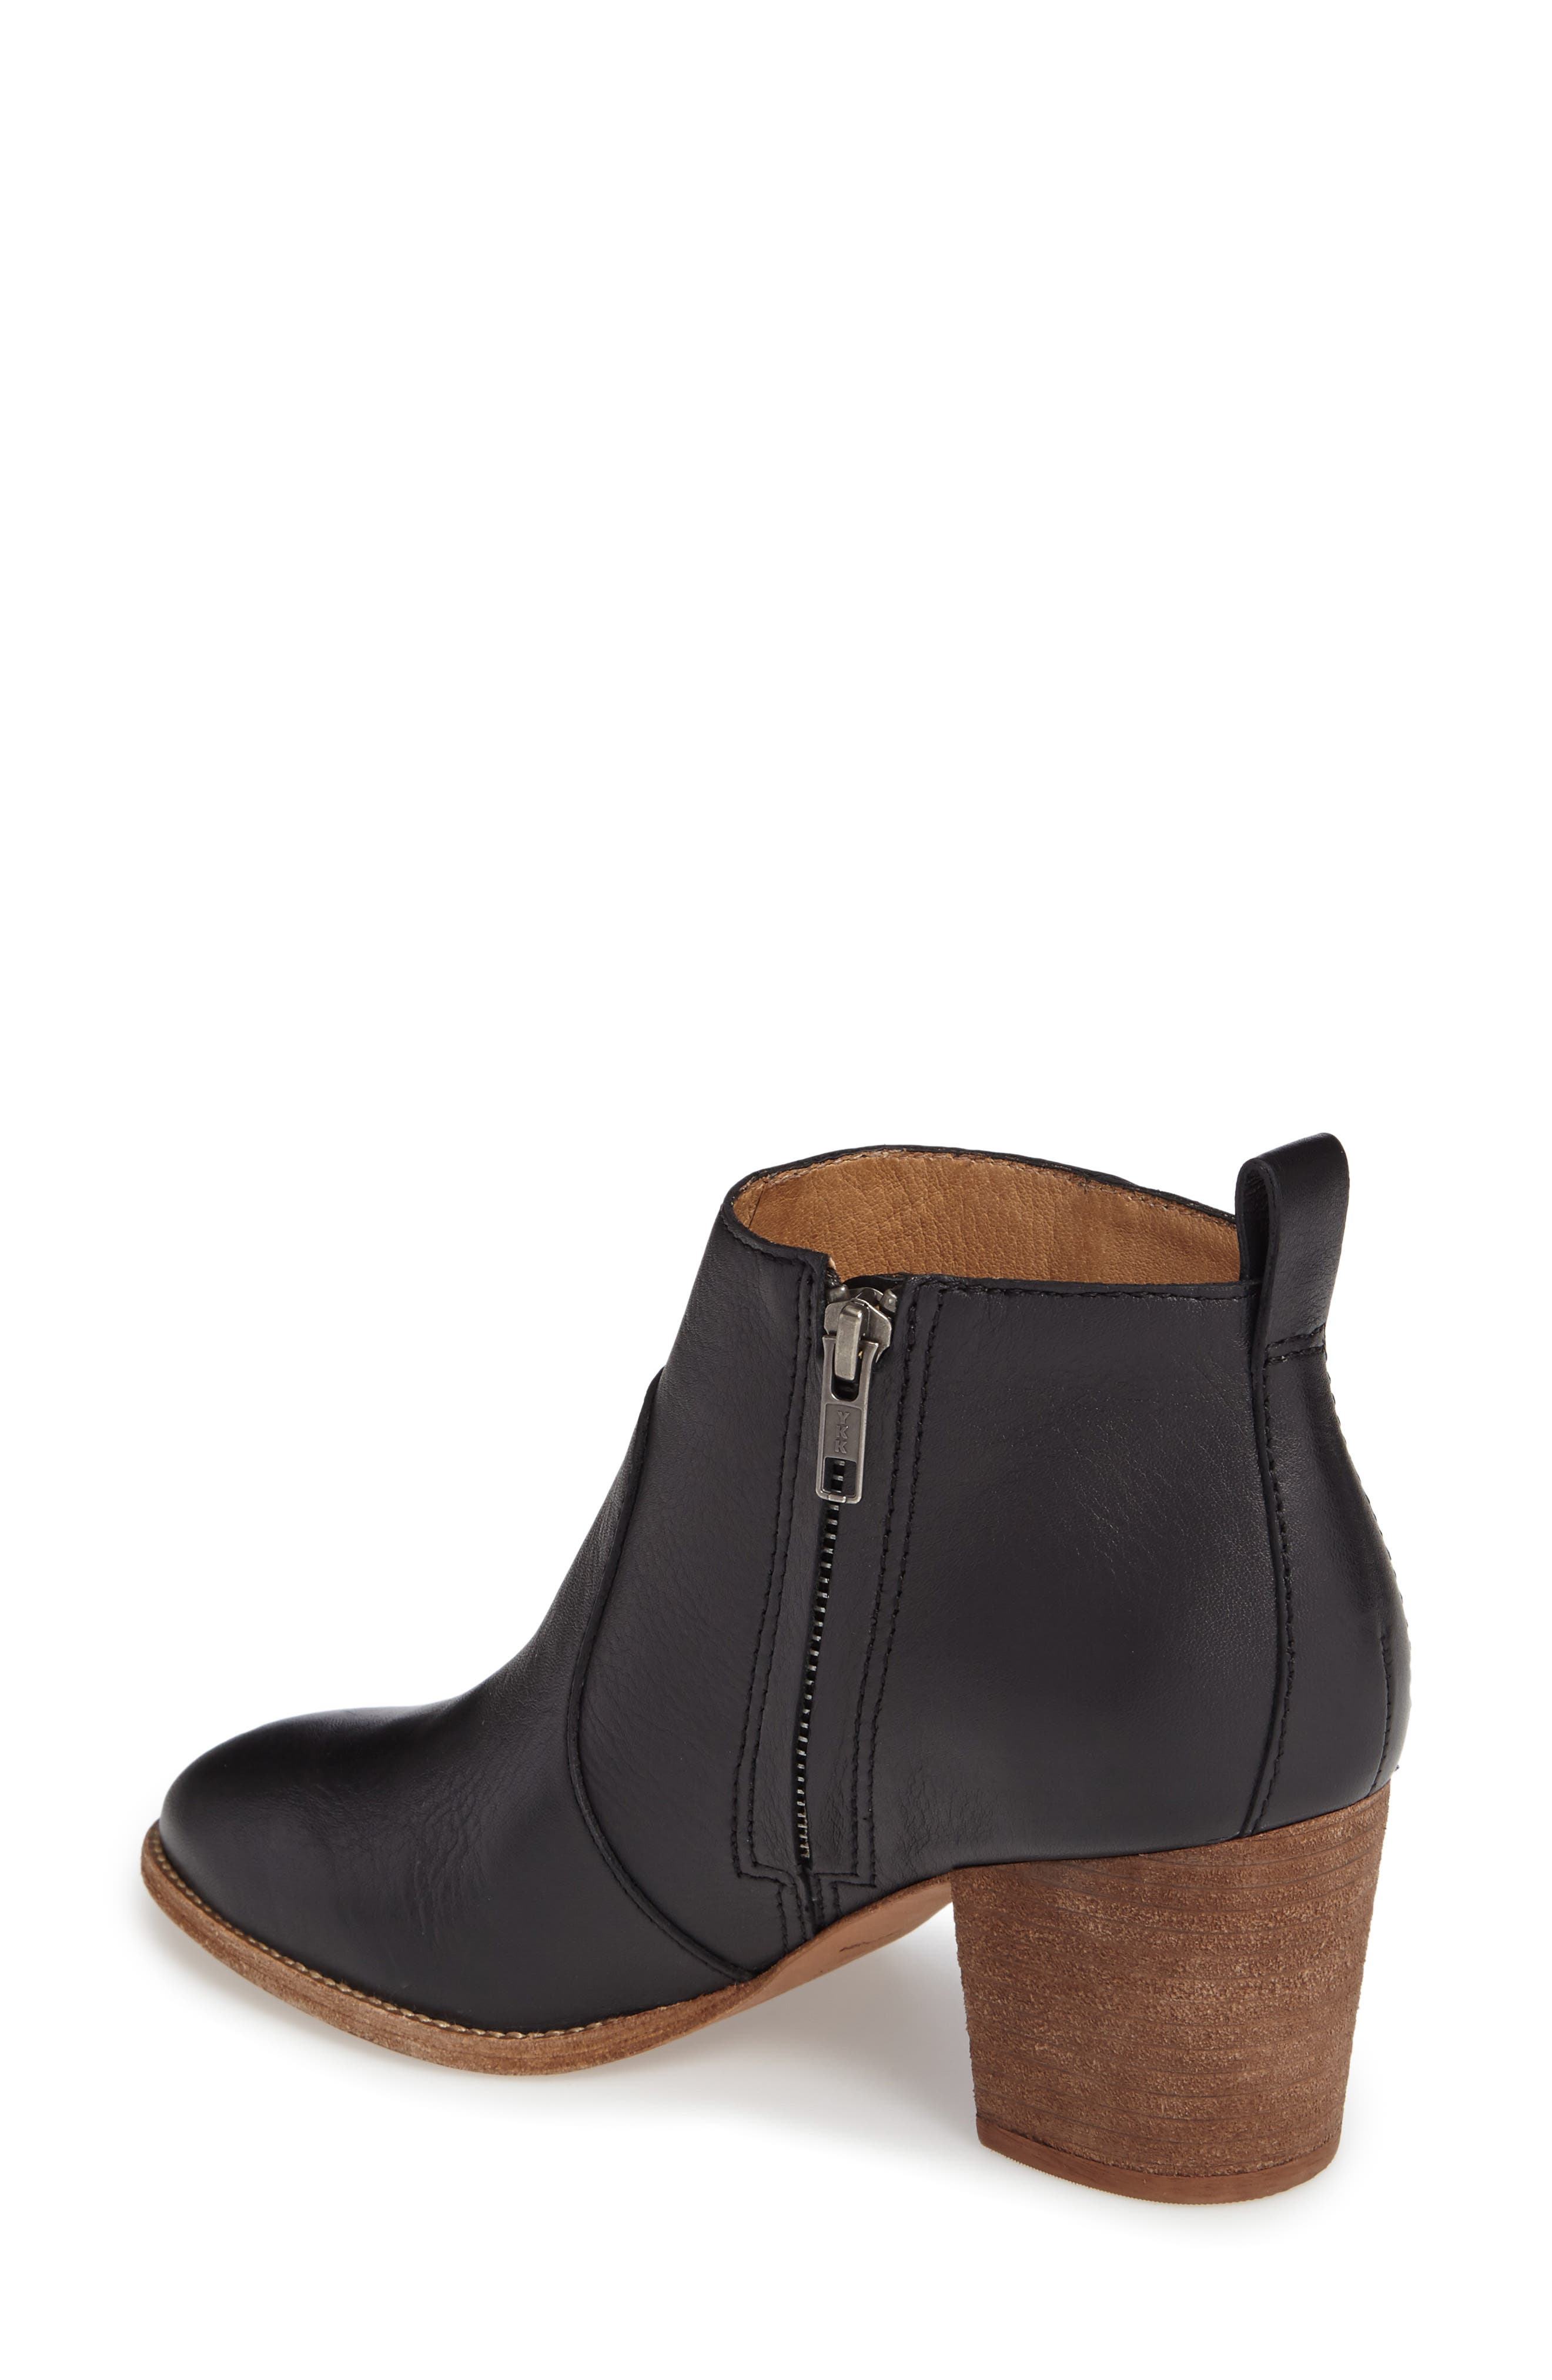 6a606bfaa3751 Women's Madewell Booties & Ankle Boots   Nordstrom